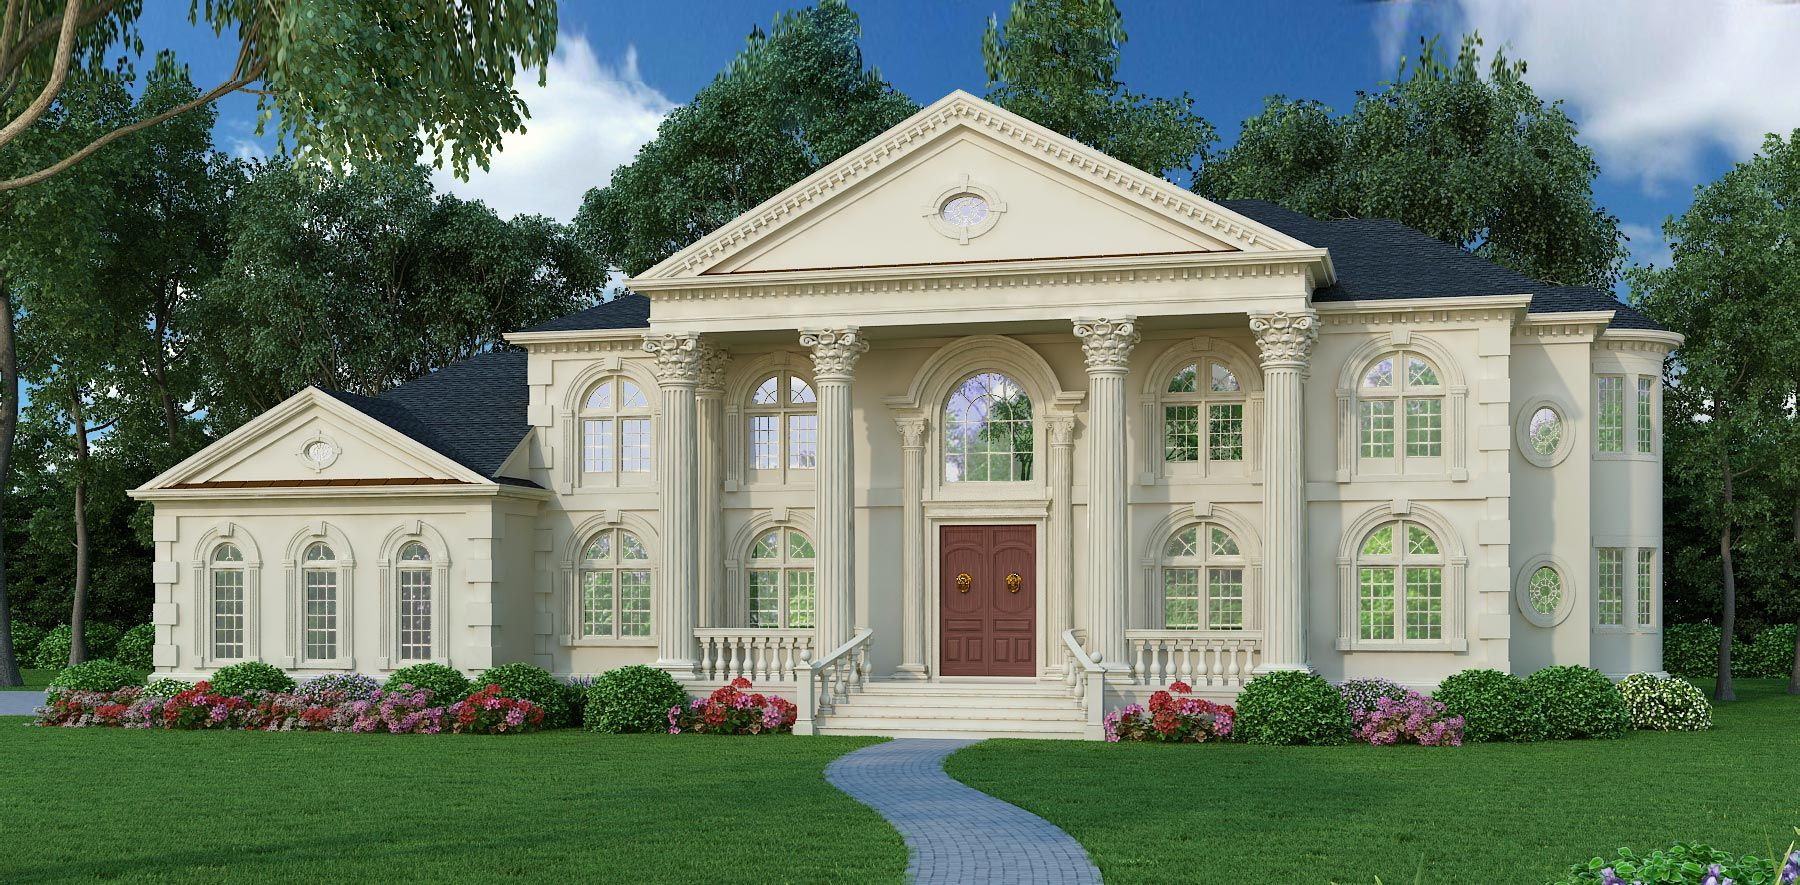 Colonial With 5 Bedrooms And 4 5 Baths House Plan 8079 Direct From The Designers Colonial House Plans Luxury House Plans House Plans